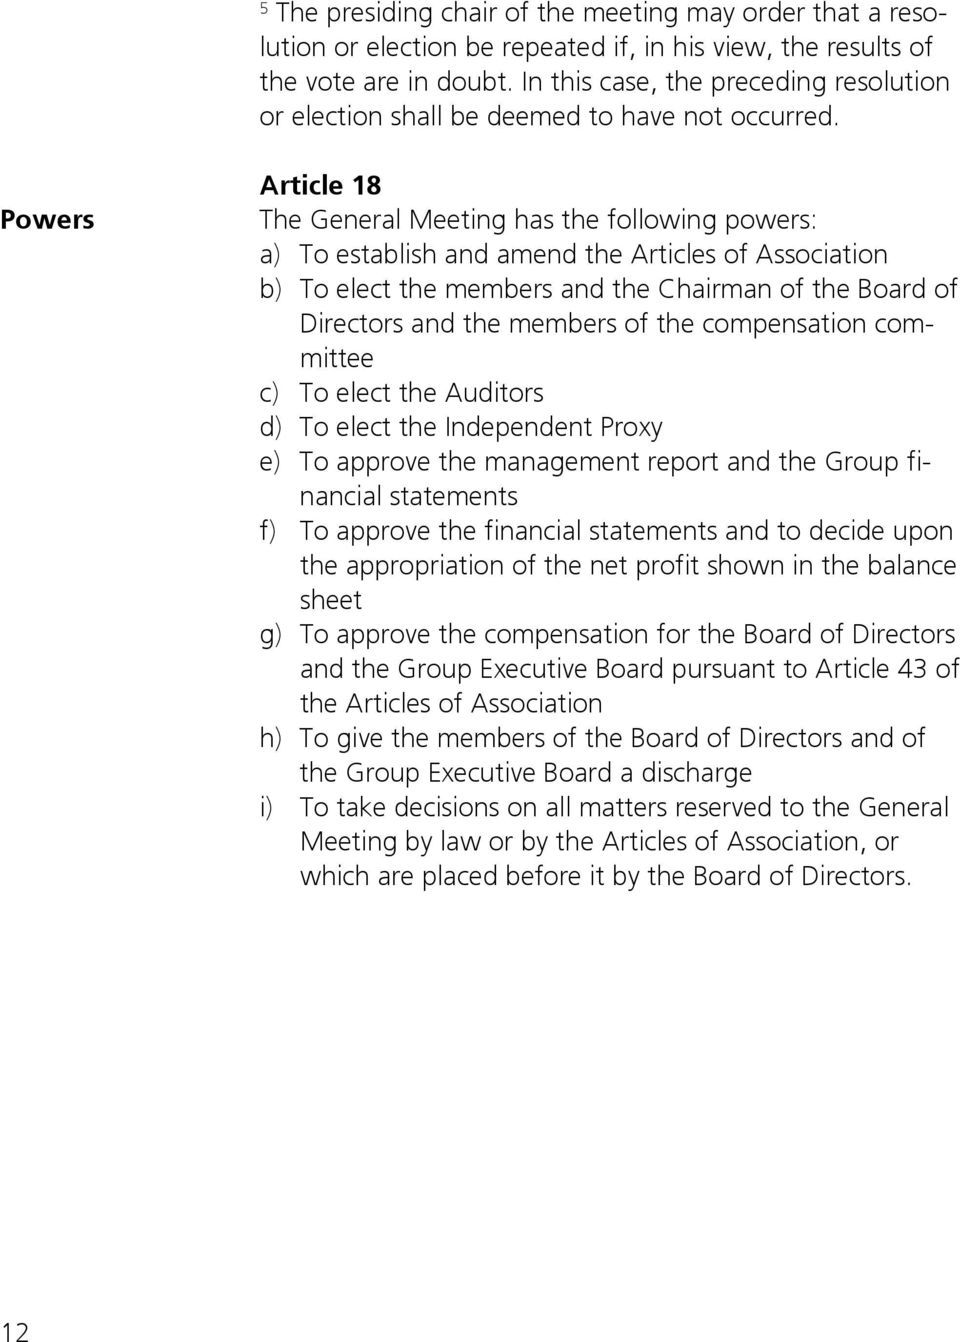 Powers Article 8 The General Meeting has the following powers: a) To establish and amend the Articles of Association b) To elect the members and the Chairman of the Board of Directors and the members